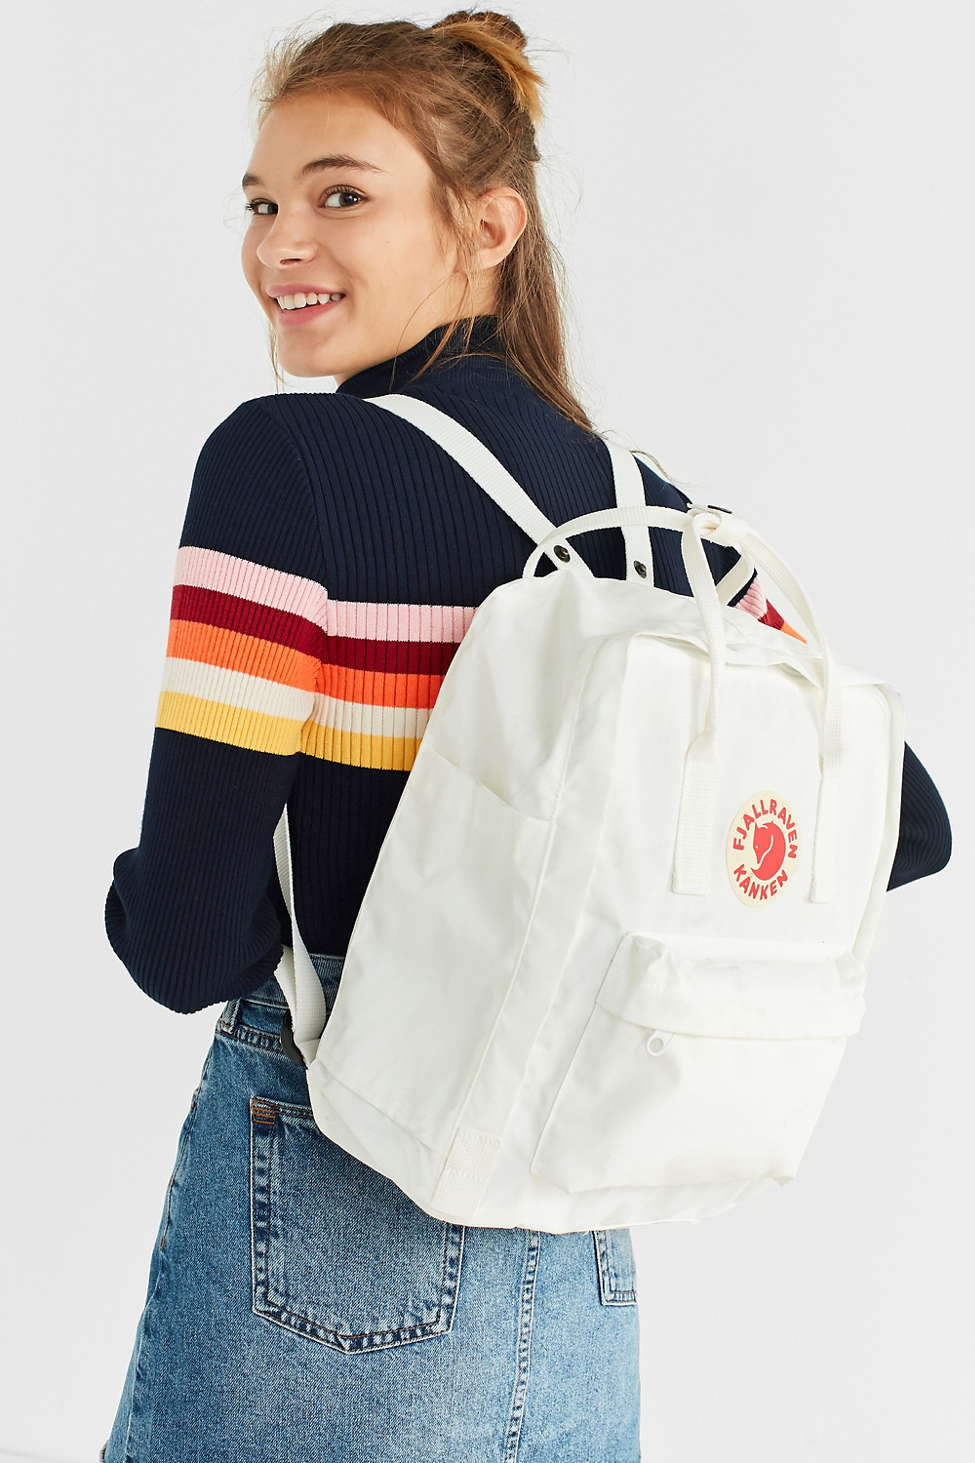 Fjallraven X Uo Kanken Backpack Urban Outfitters